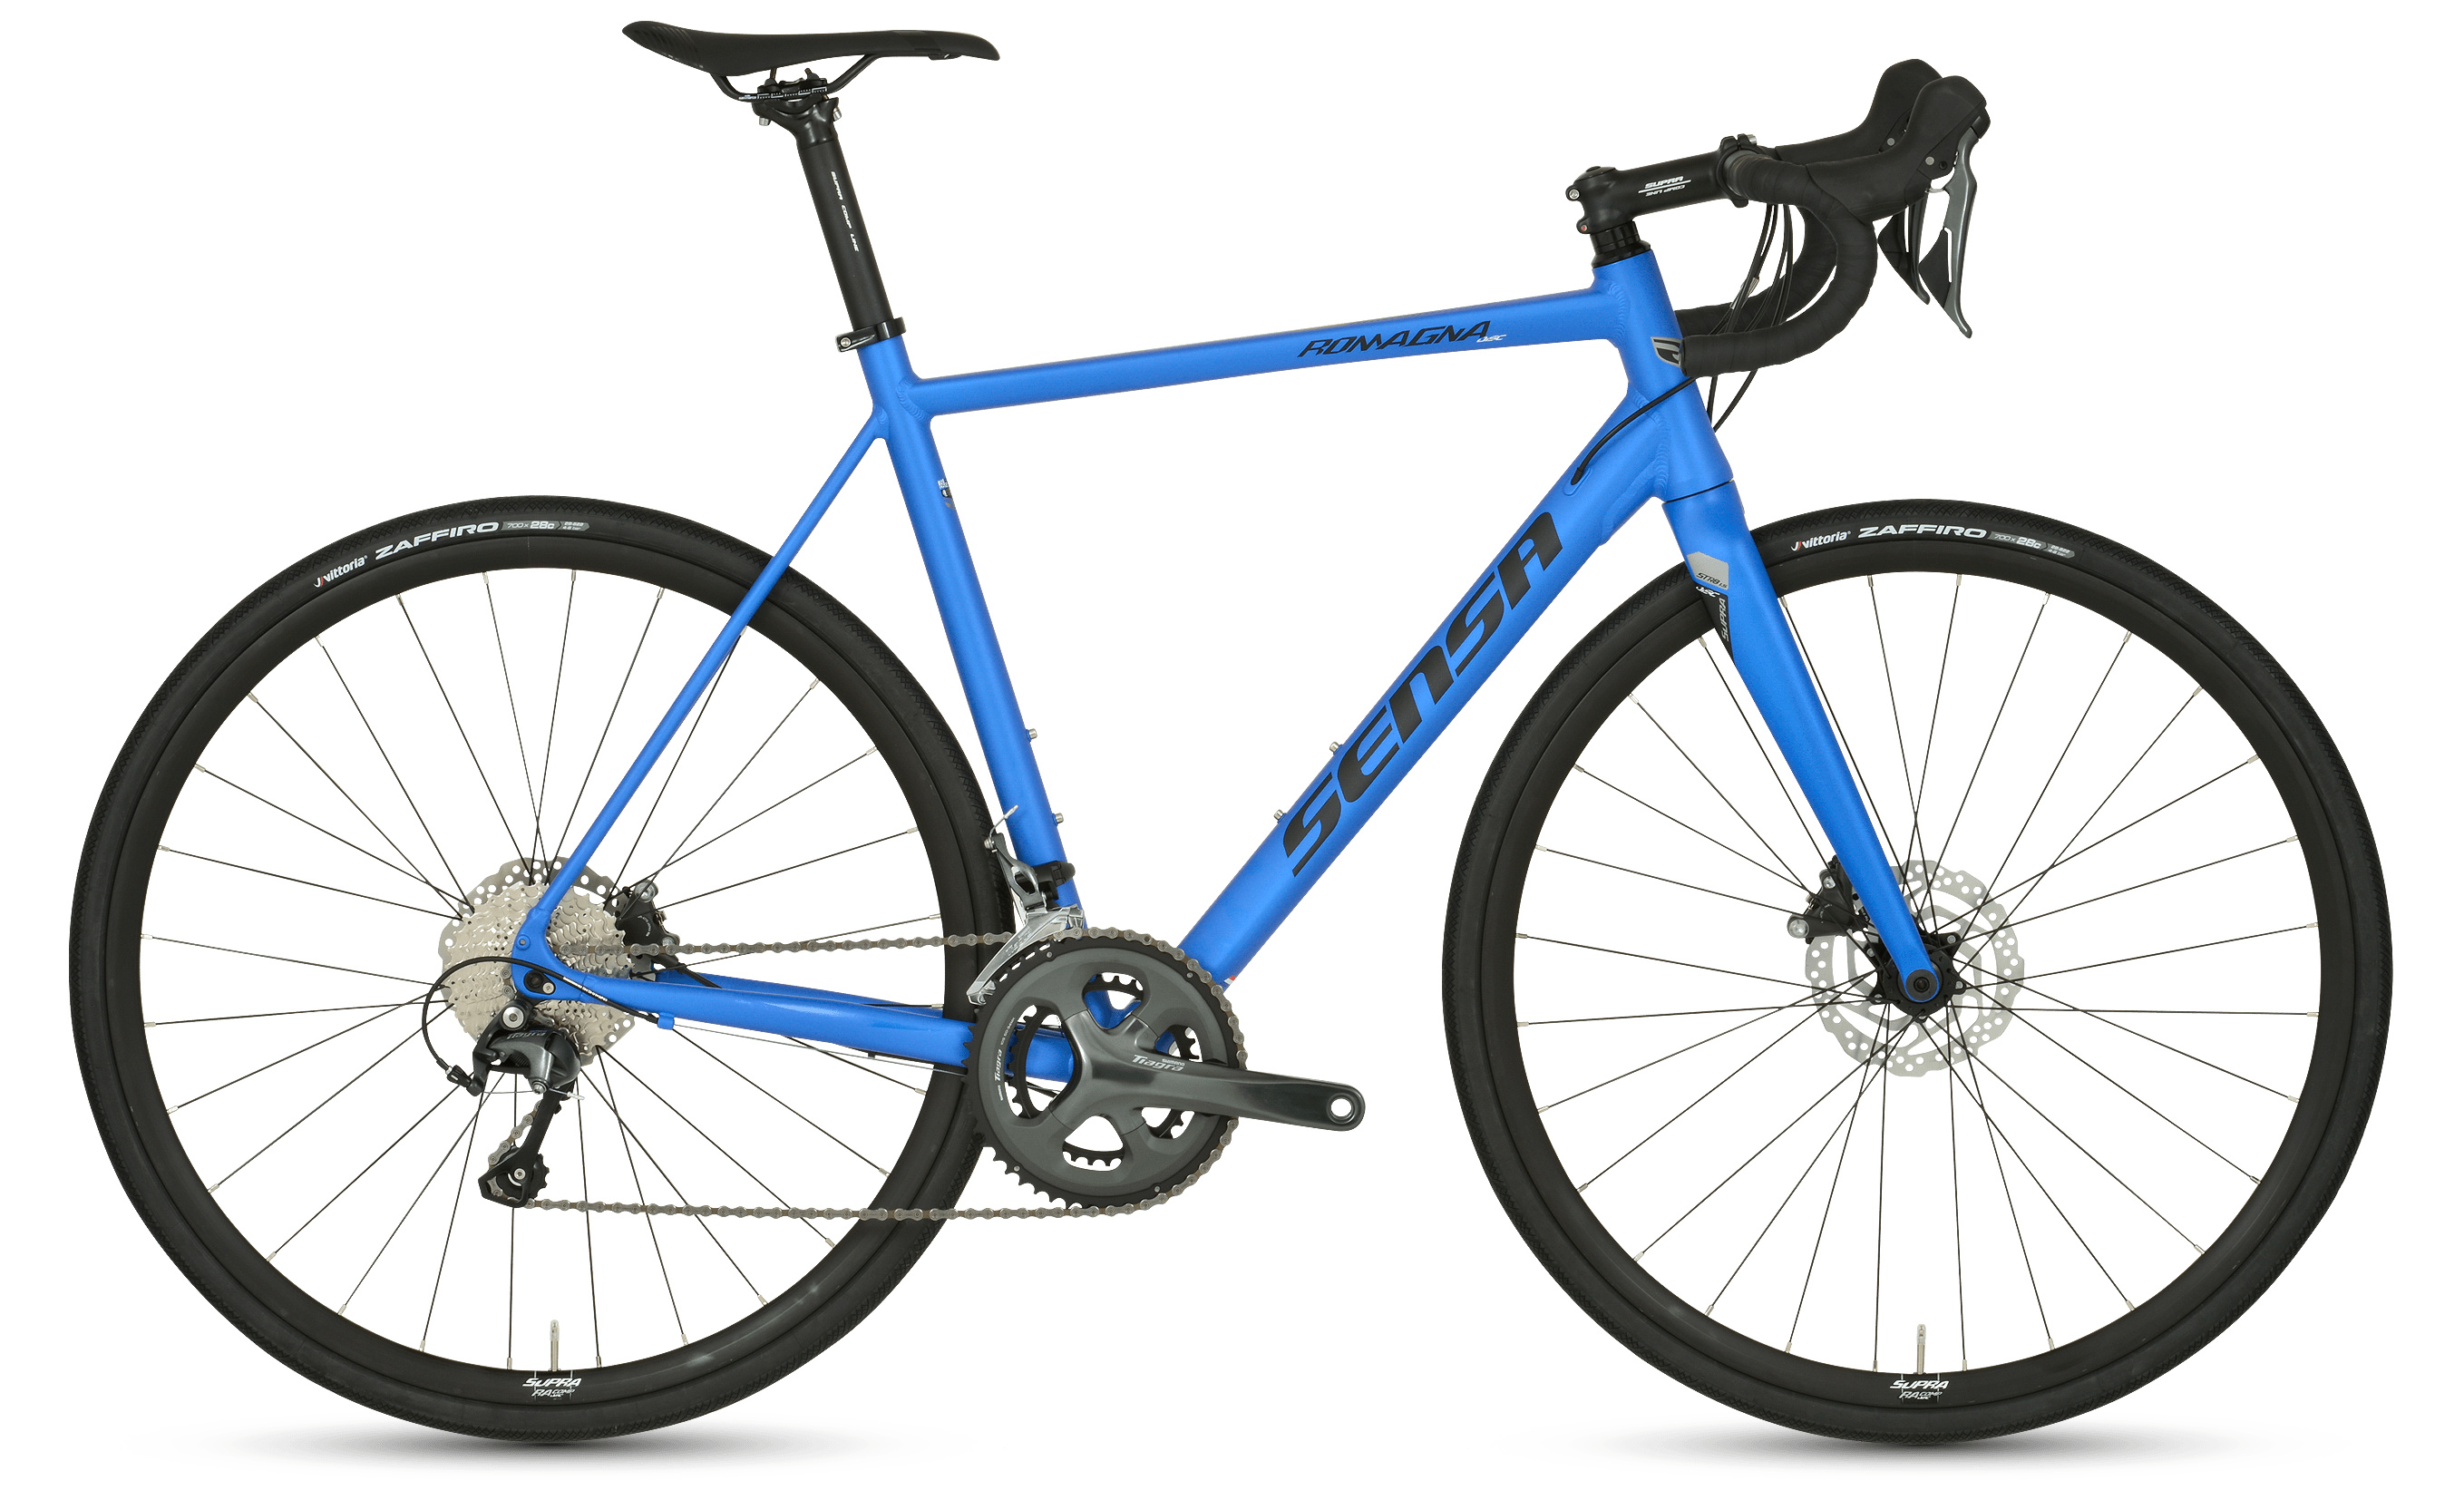 S2075RD15LT-Romagna-Disc-Limited-Tiagra